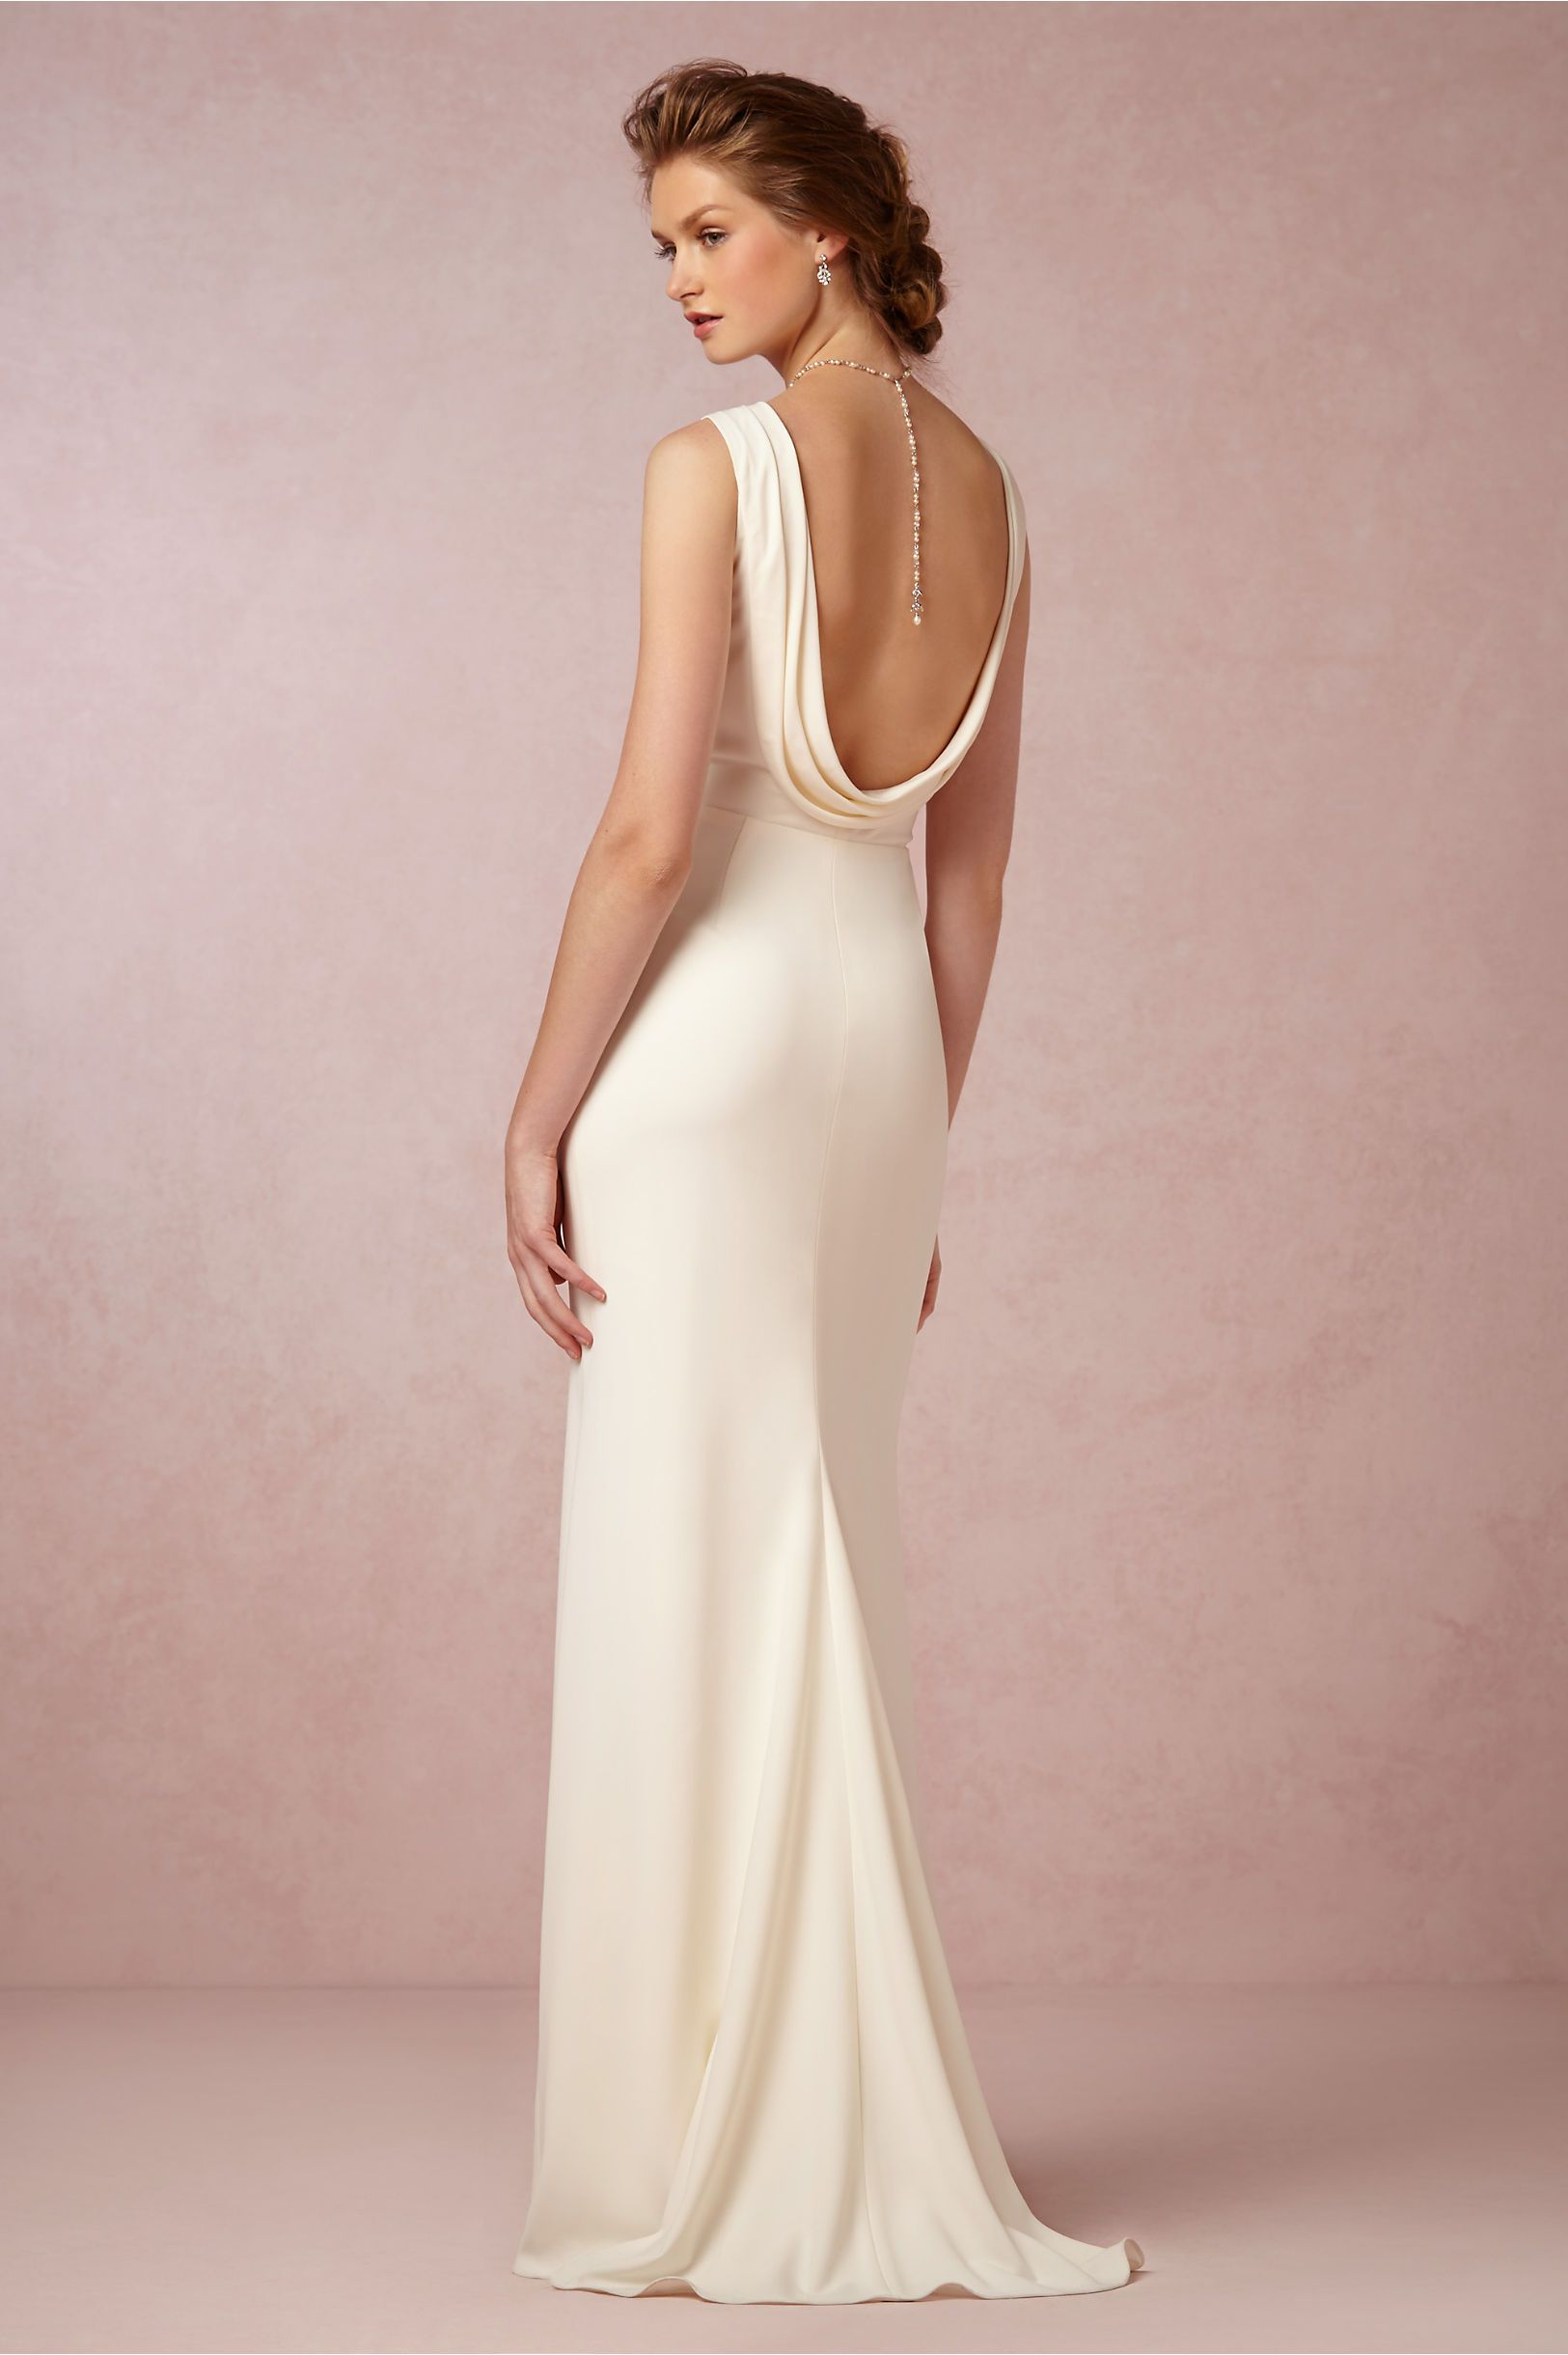 Best wedding dresses for athletic body type  Susan Taylor smeleanorrigby on Pinterest